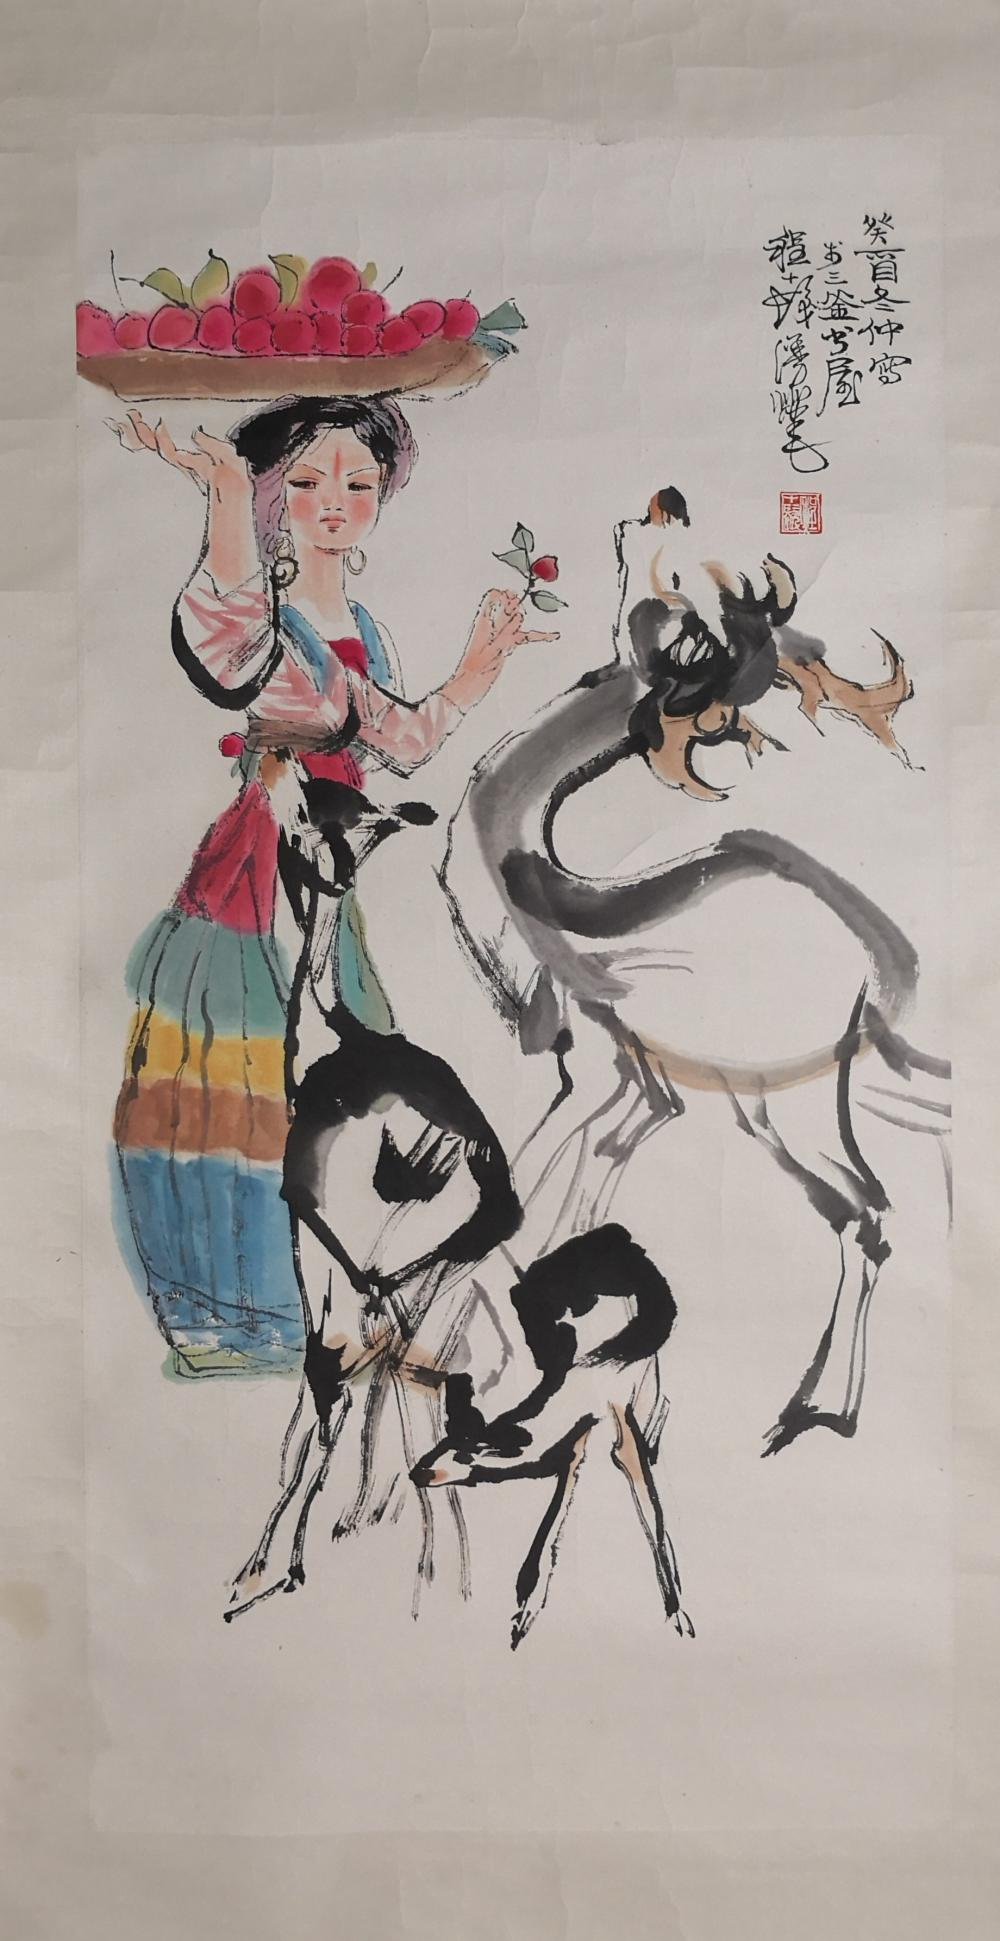 A CHINESE PAINTING BY CHENG SHIFA